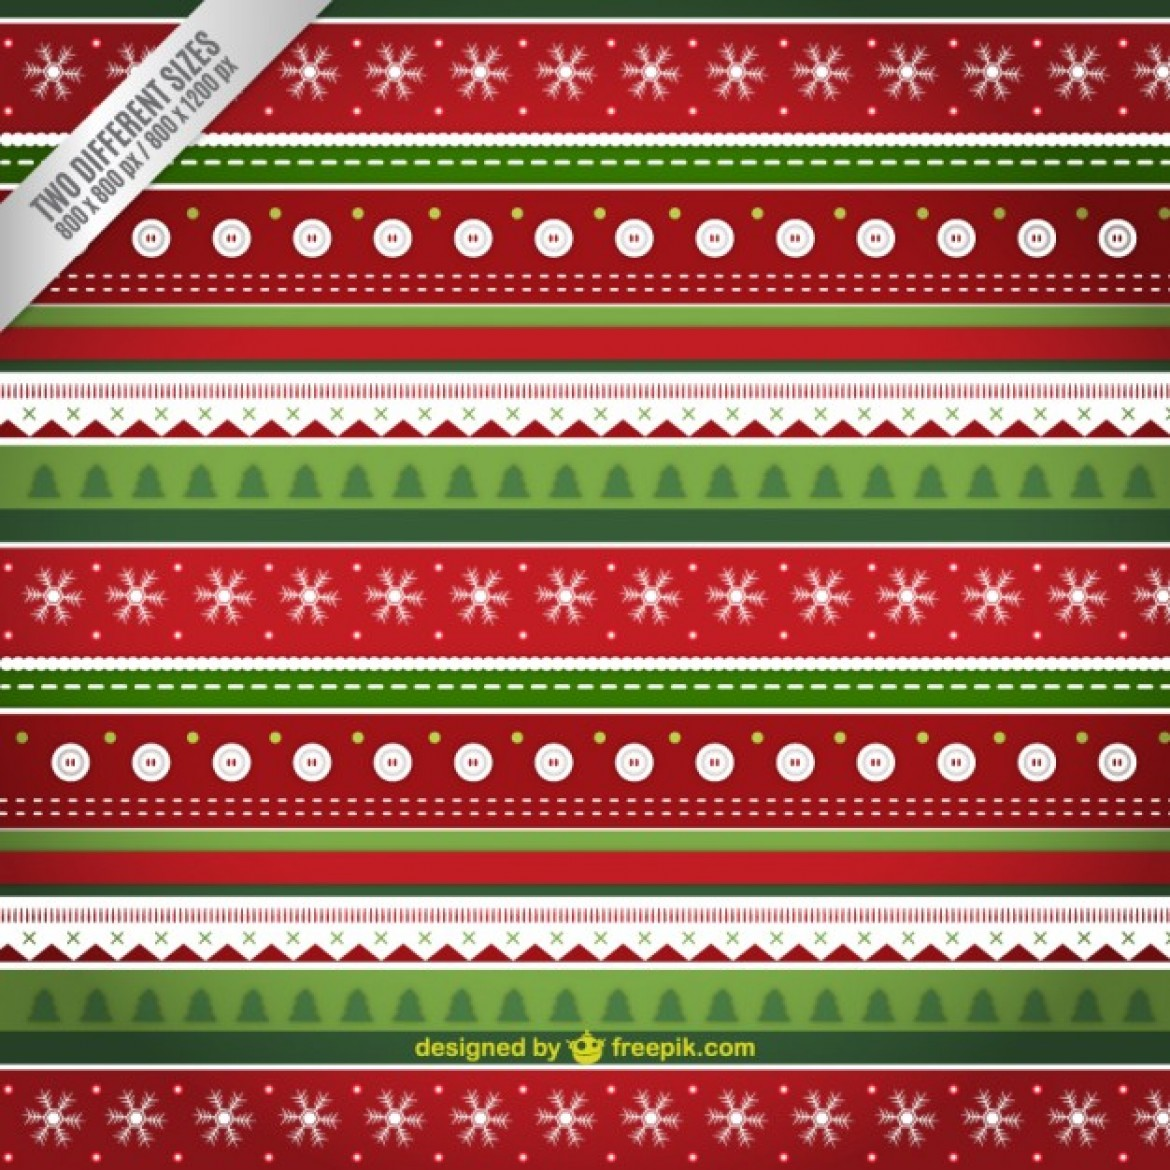 Free Download - Christmas Computer Desktop &amp- iPhone Backgrounds ...